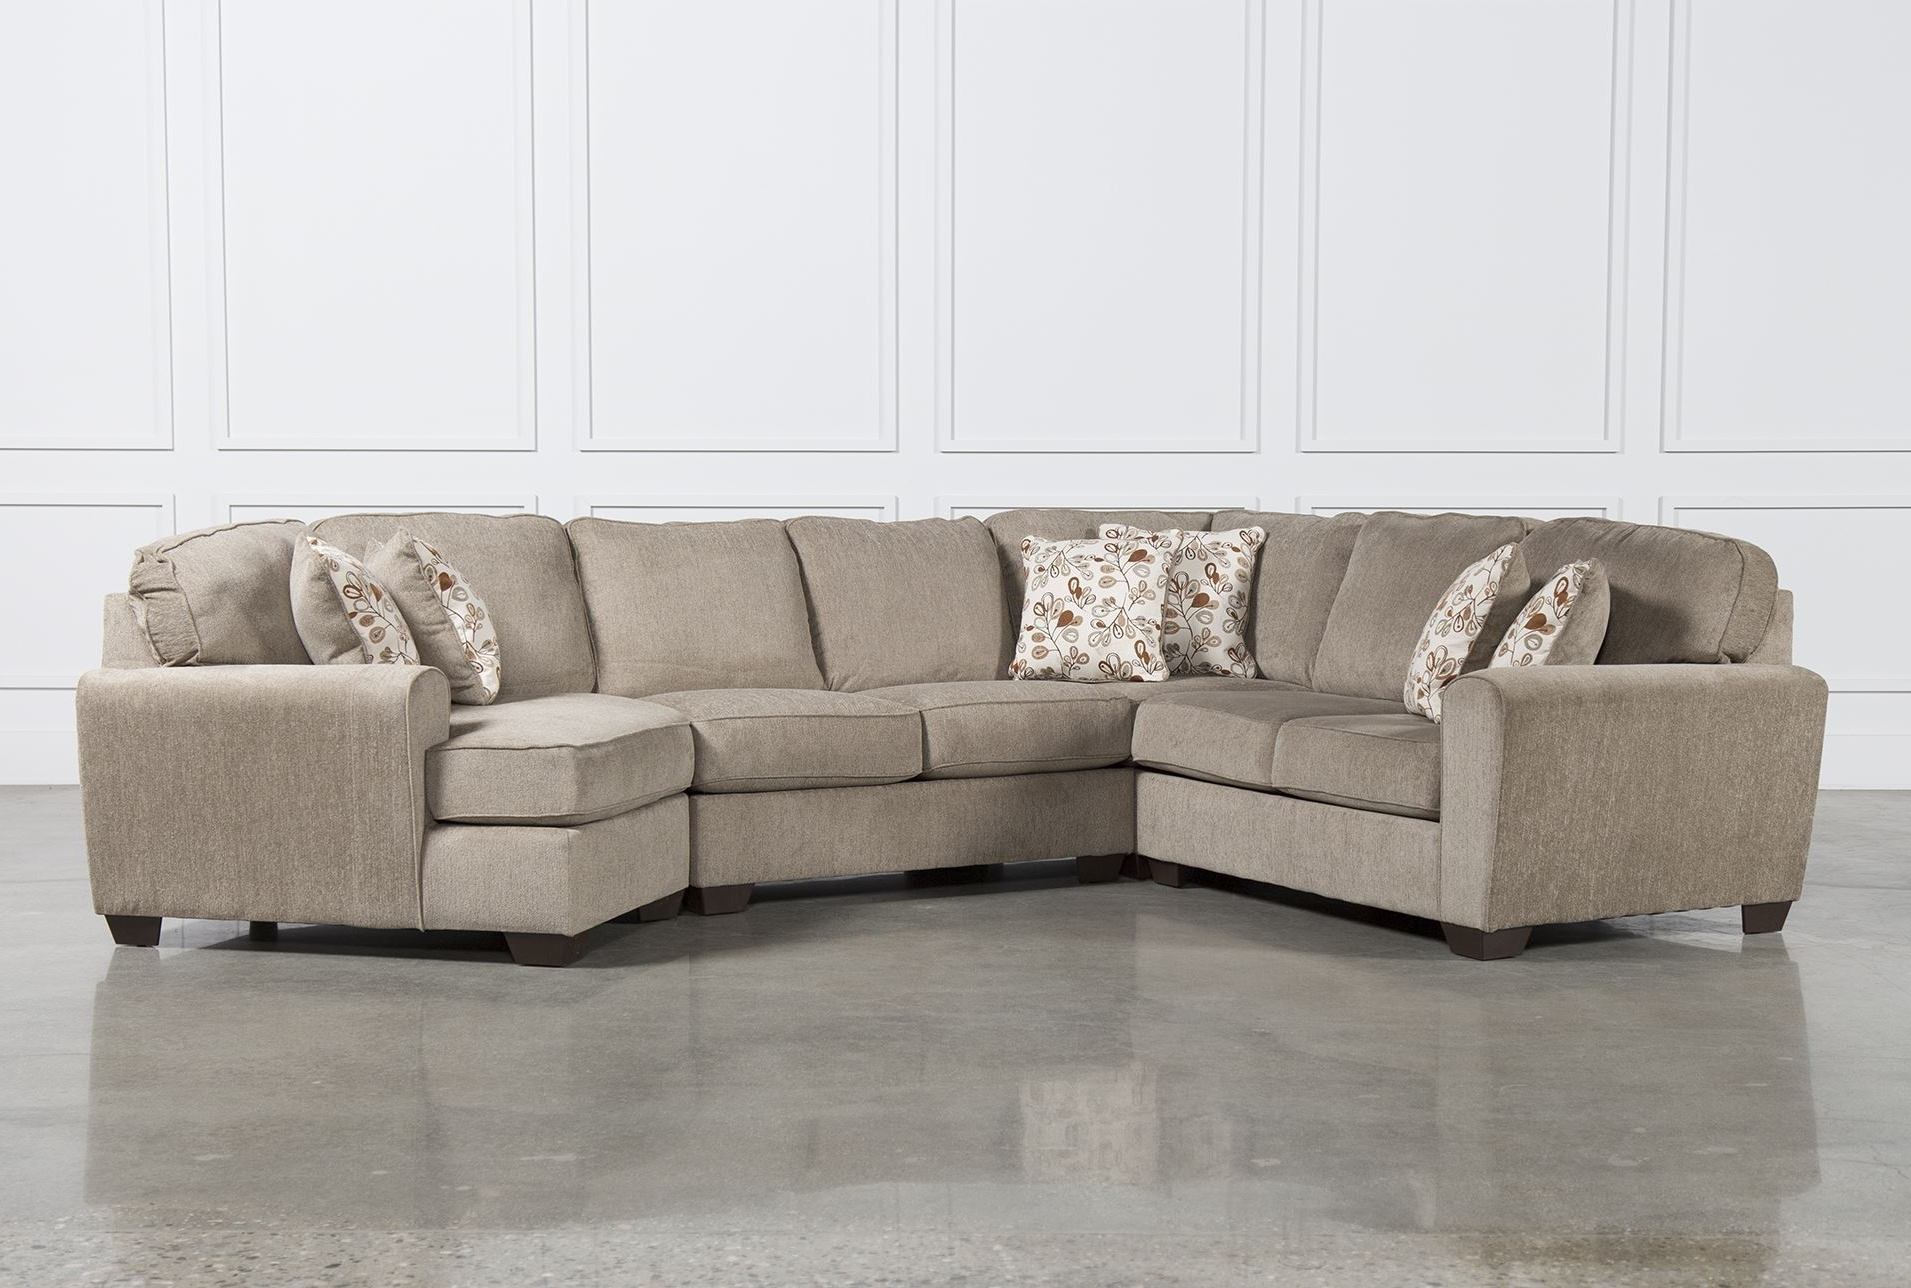 Popular Patola Park 4 Piece Sectional W Raf Cuddler Living Spaces In Sofa Intended For Living Spaces Sectional Sofas (View 17 of 20)